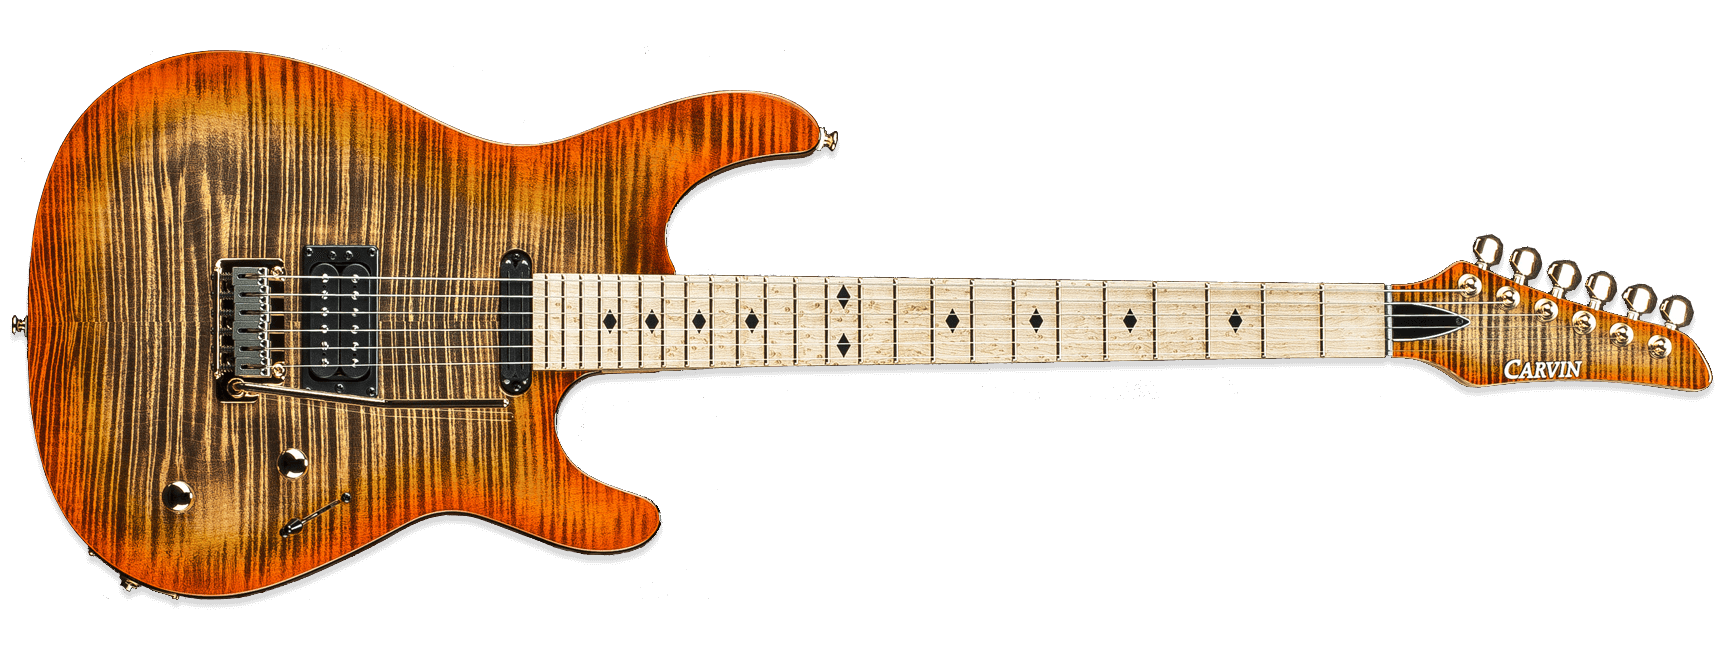 Kiesel Carvin GH24 Greg Howe California Orange Burst